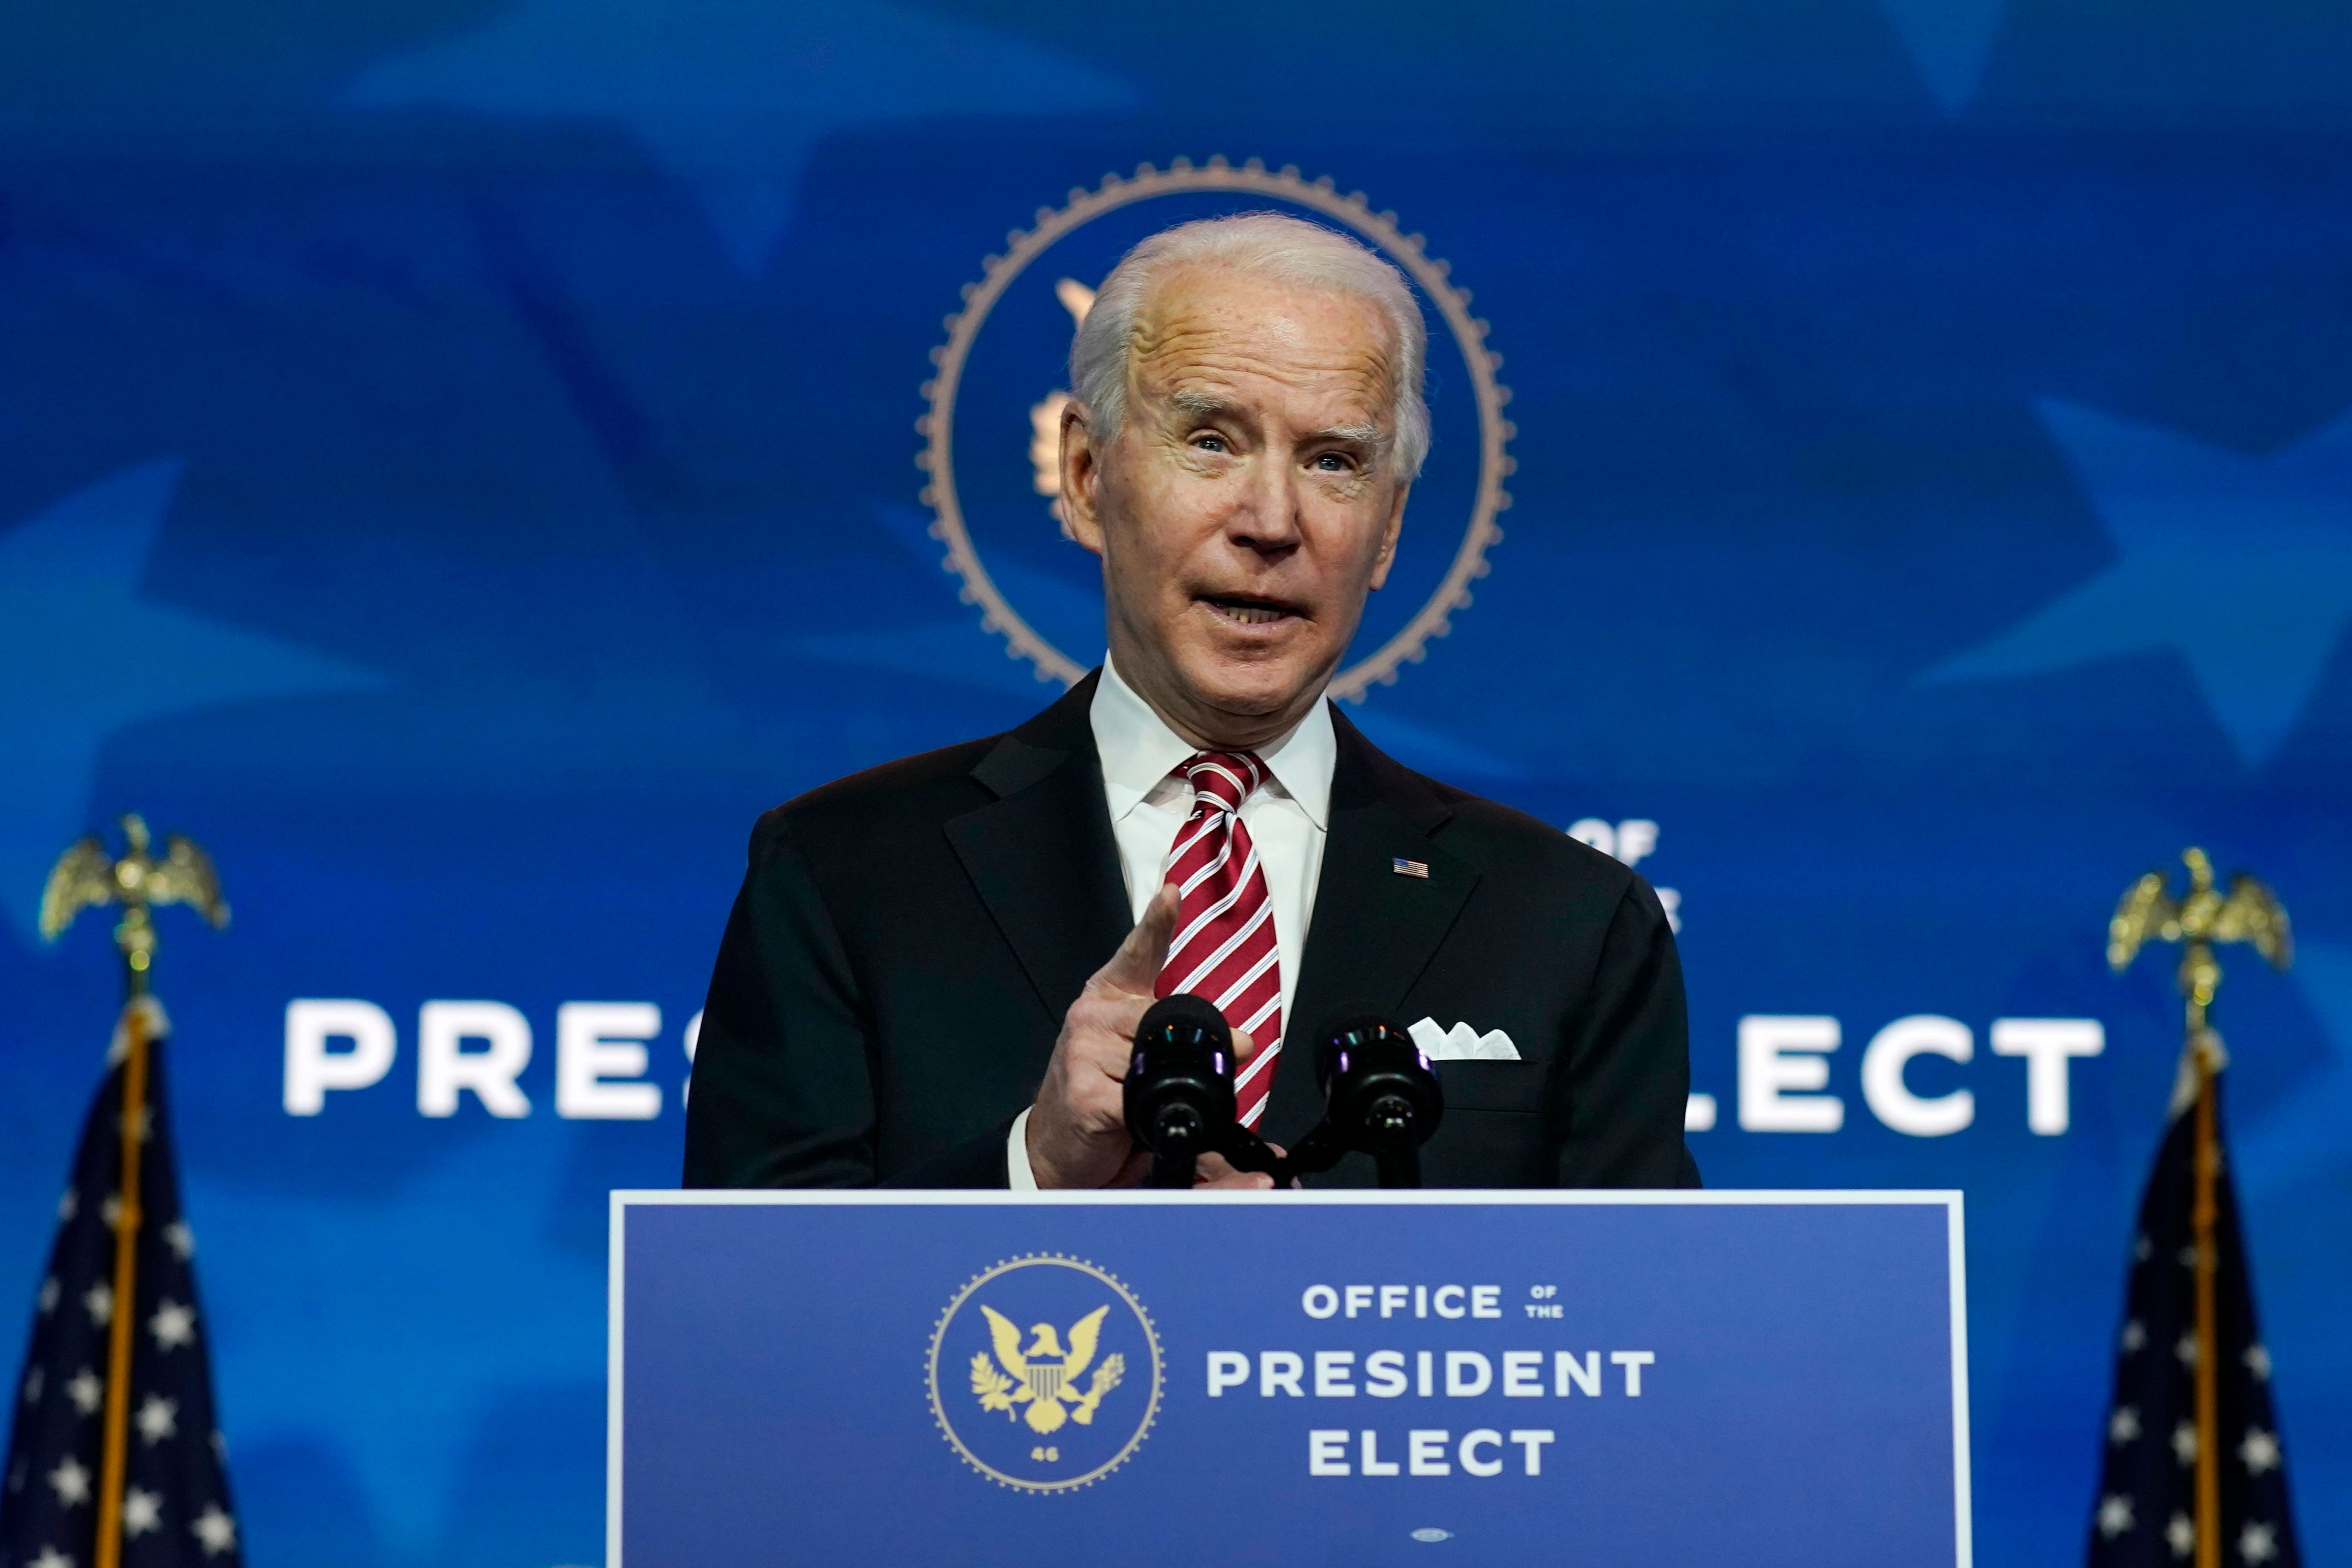 Biden will introduce $1.9 trillion COVID-19 relief package Thursday evening